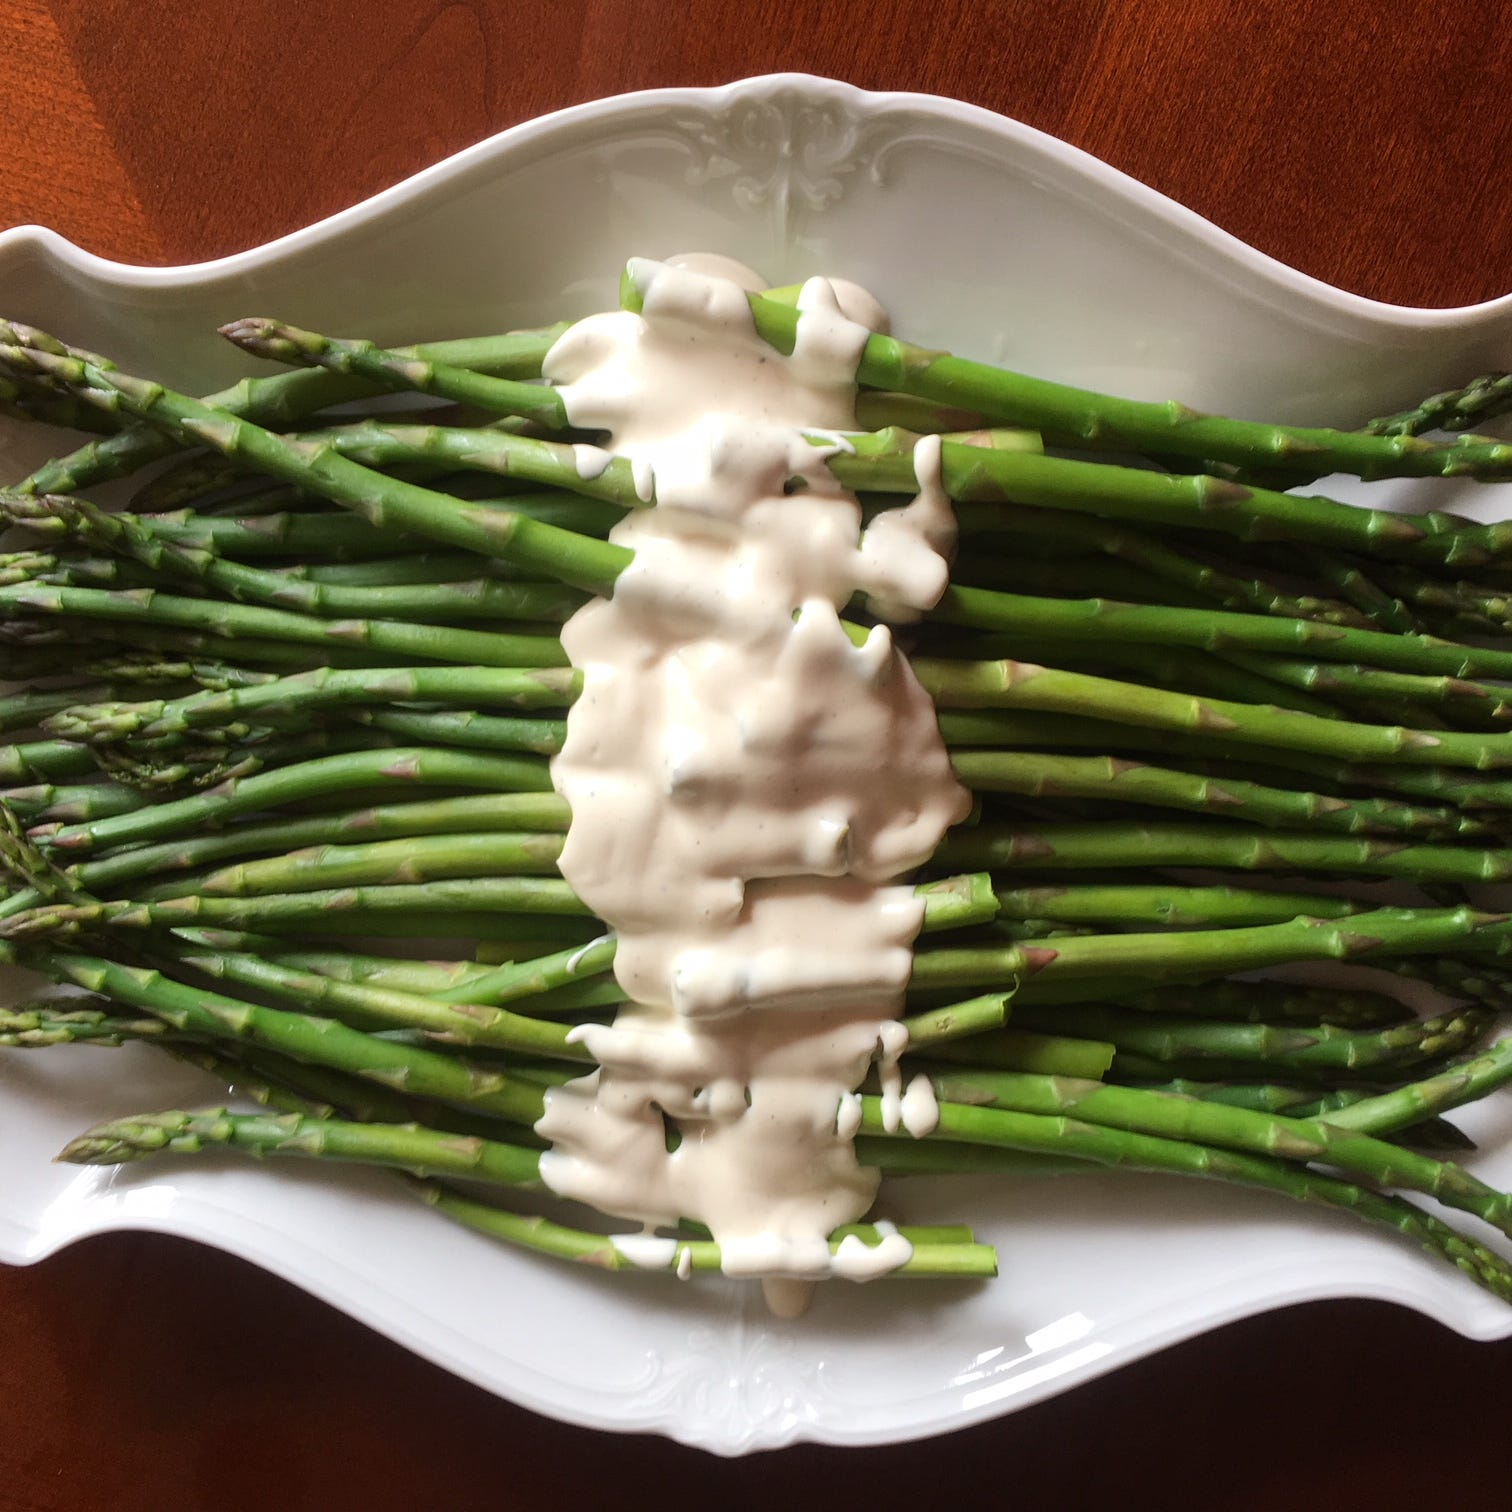 Load up on asparagus for it's healthy does of folate